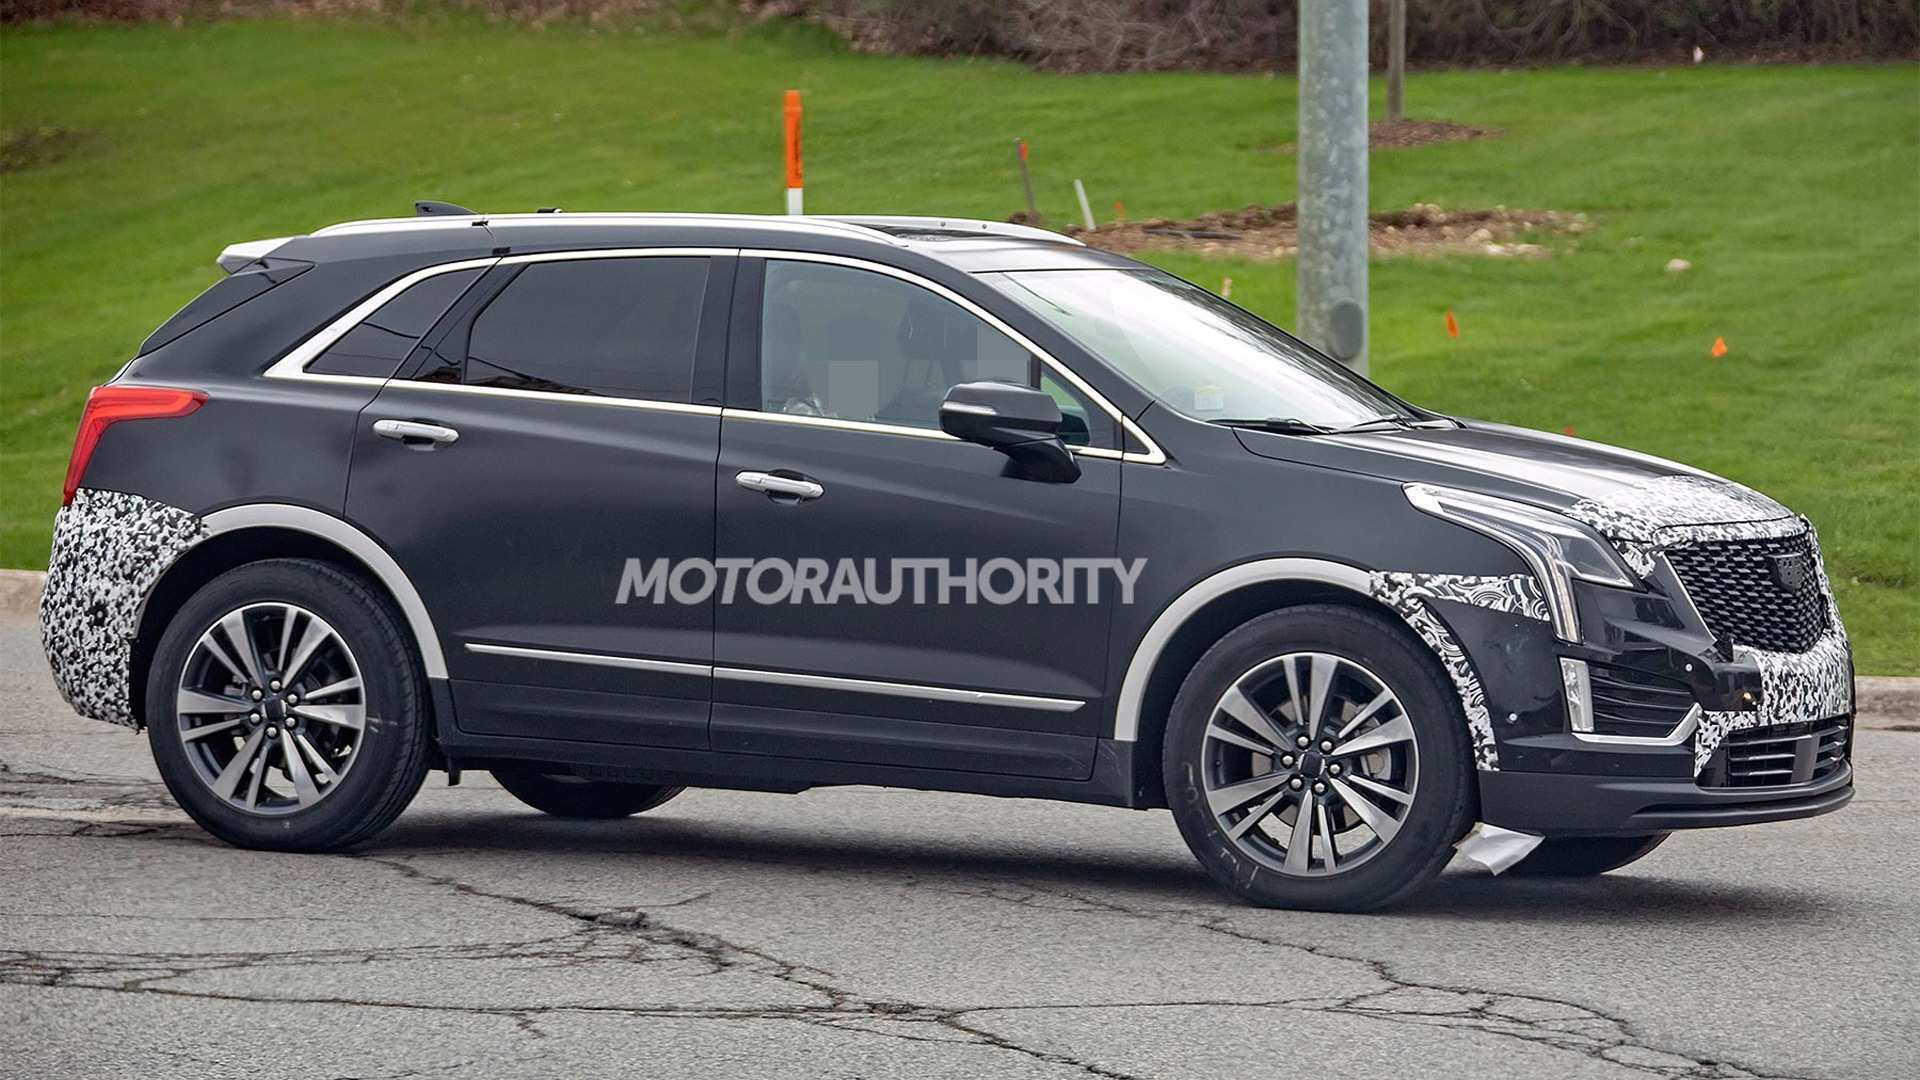 98 A When Will The 2020 Cadillac Xt5 Be Available History